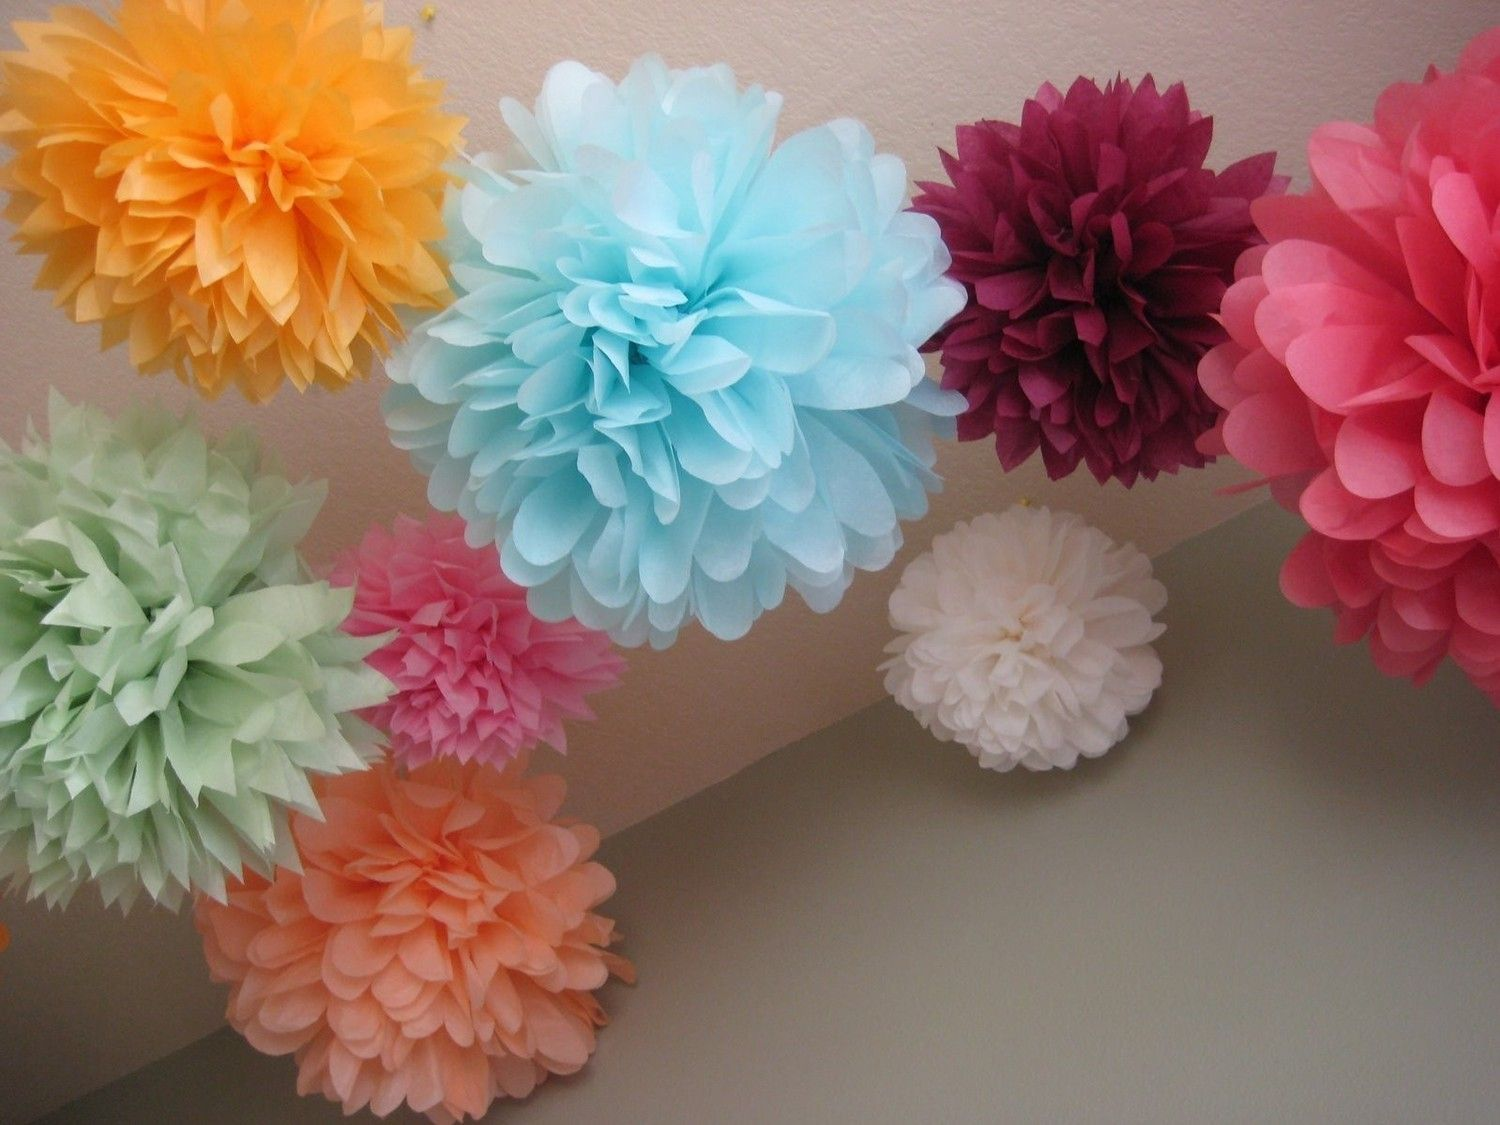 Tissue paper pom poms have these in my room and love them 20 tissue paper pom poms wedding decoration party diy kit as seen on portlandia tv show backdrop altar decor mightylinksfo Image collections